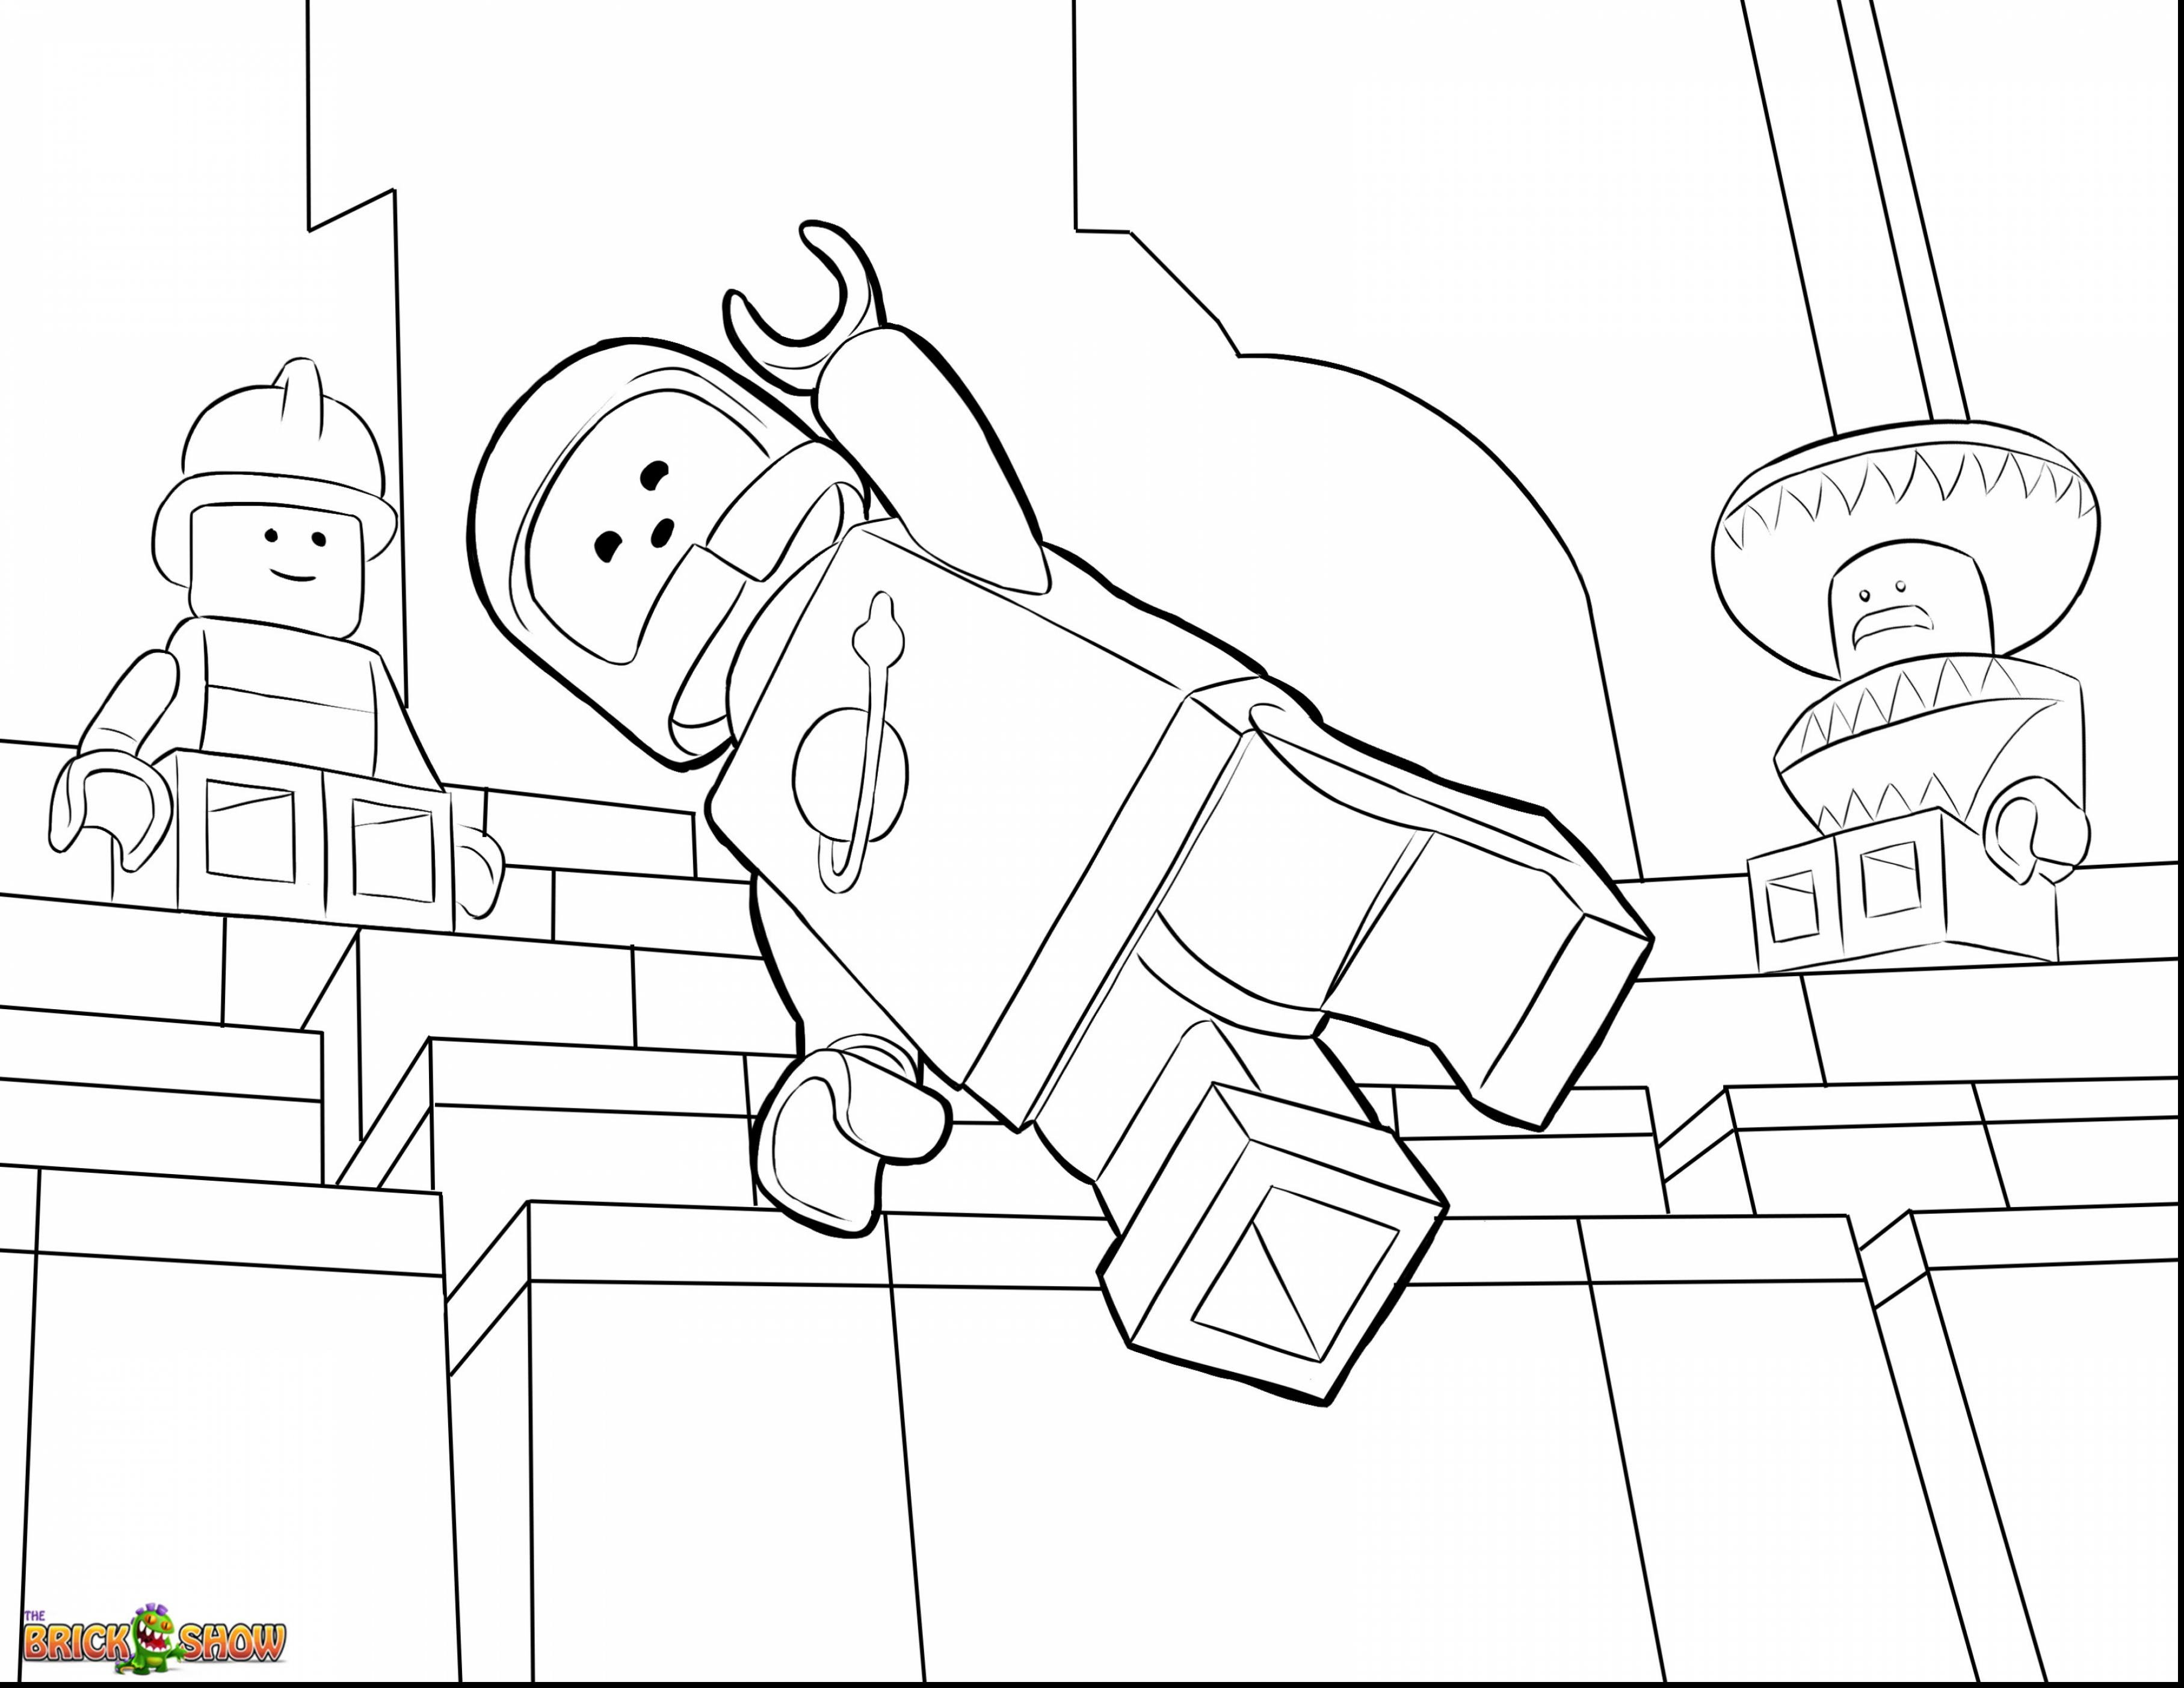 printable lego movie 2 coloring pages coloring pages lego movie 2 2 lego pages movie coloring printable